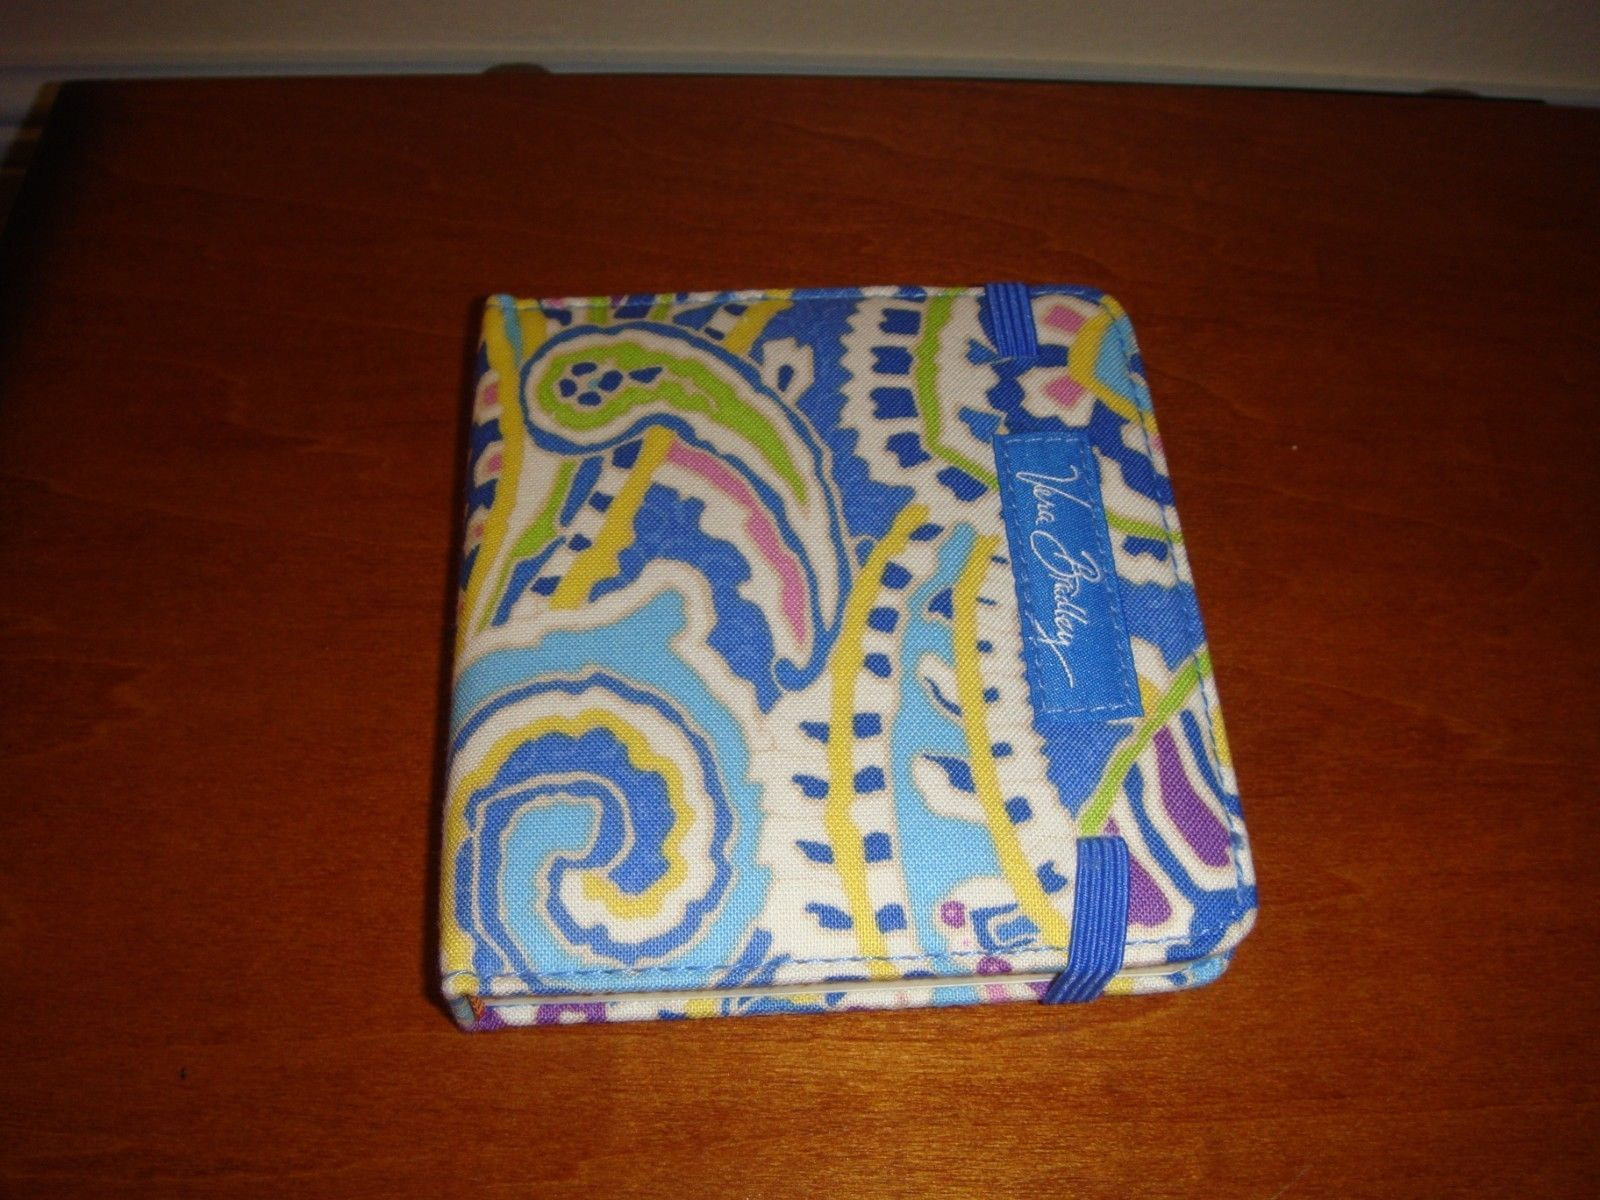 14bca22c0acb Vera Bradley Capri Blue Pocket~Notebook and 19 similar items. 57